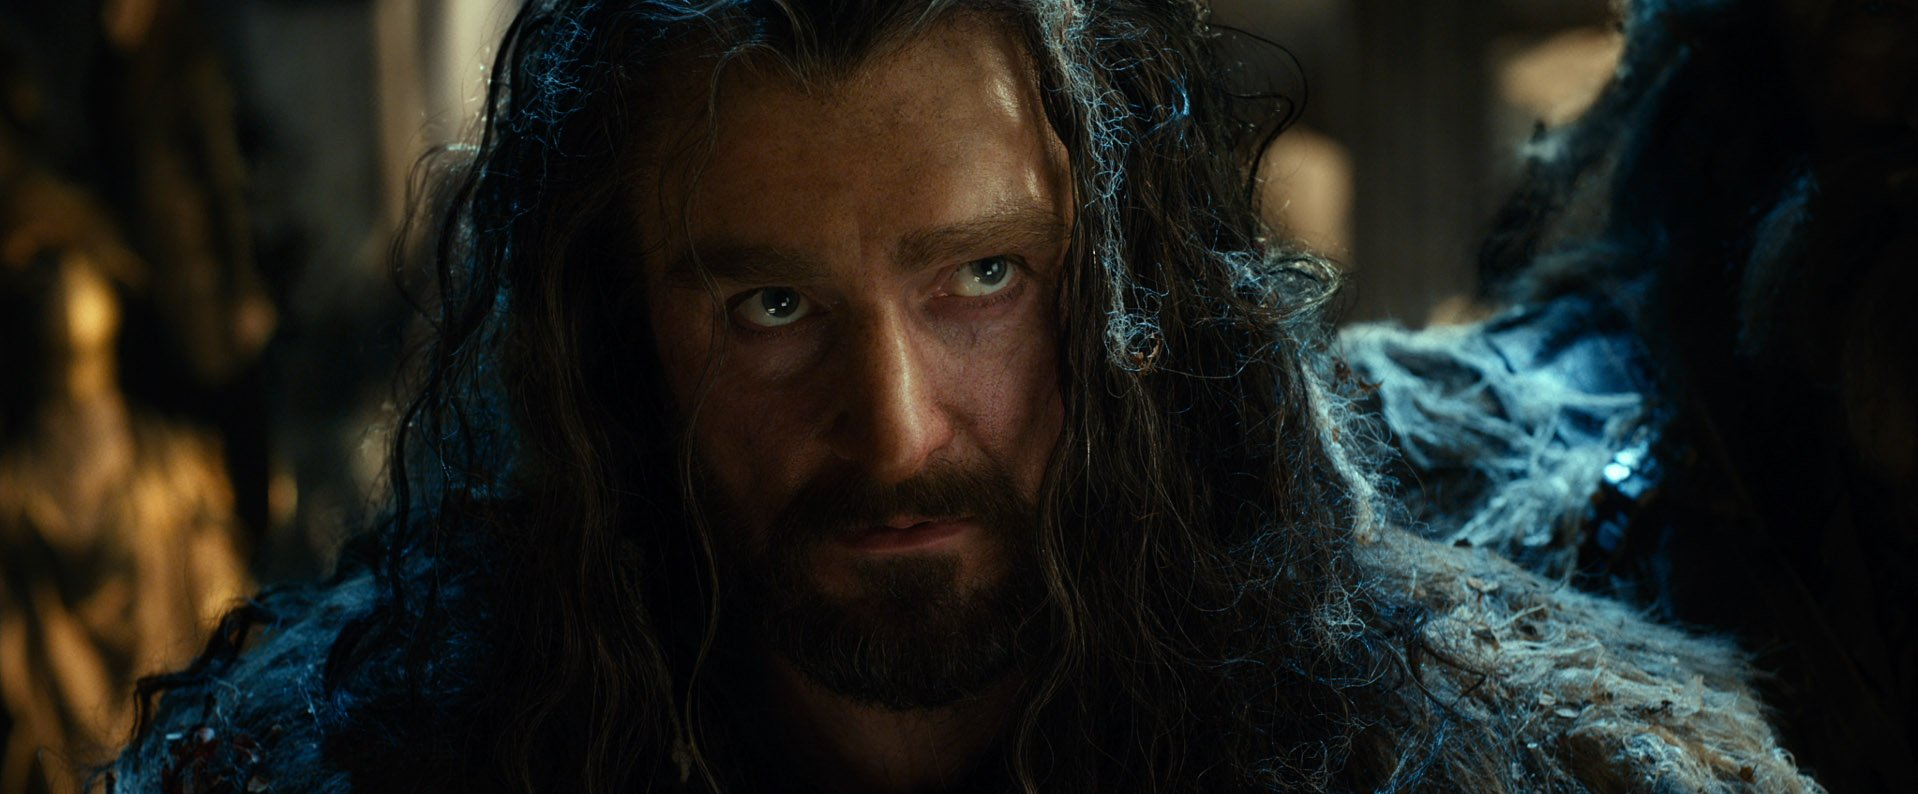 hobbit desolation smaug thorin The Hobbit: The Desolation Of Smaug Gallery